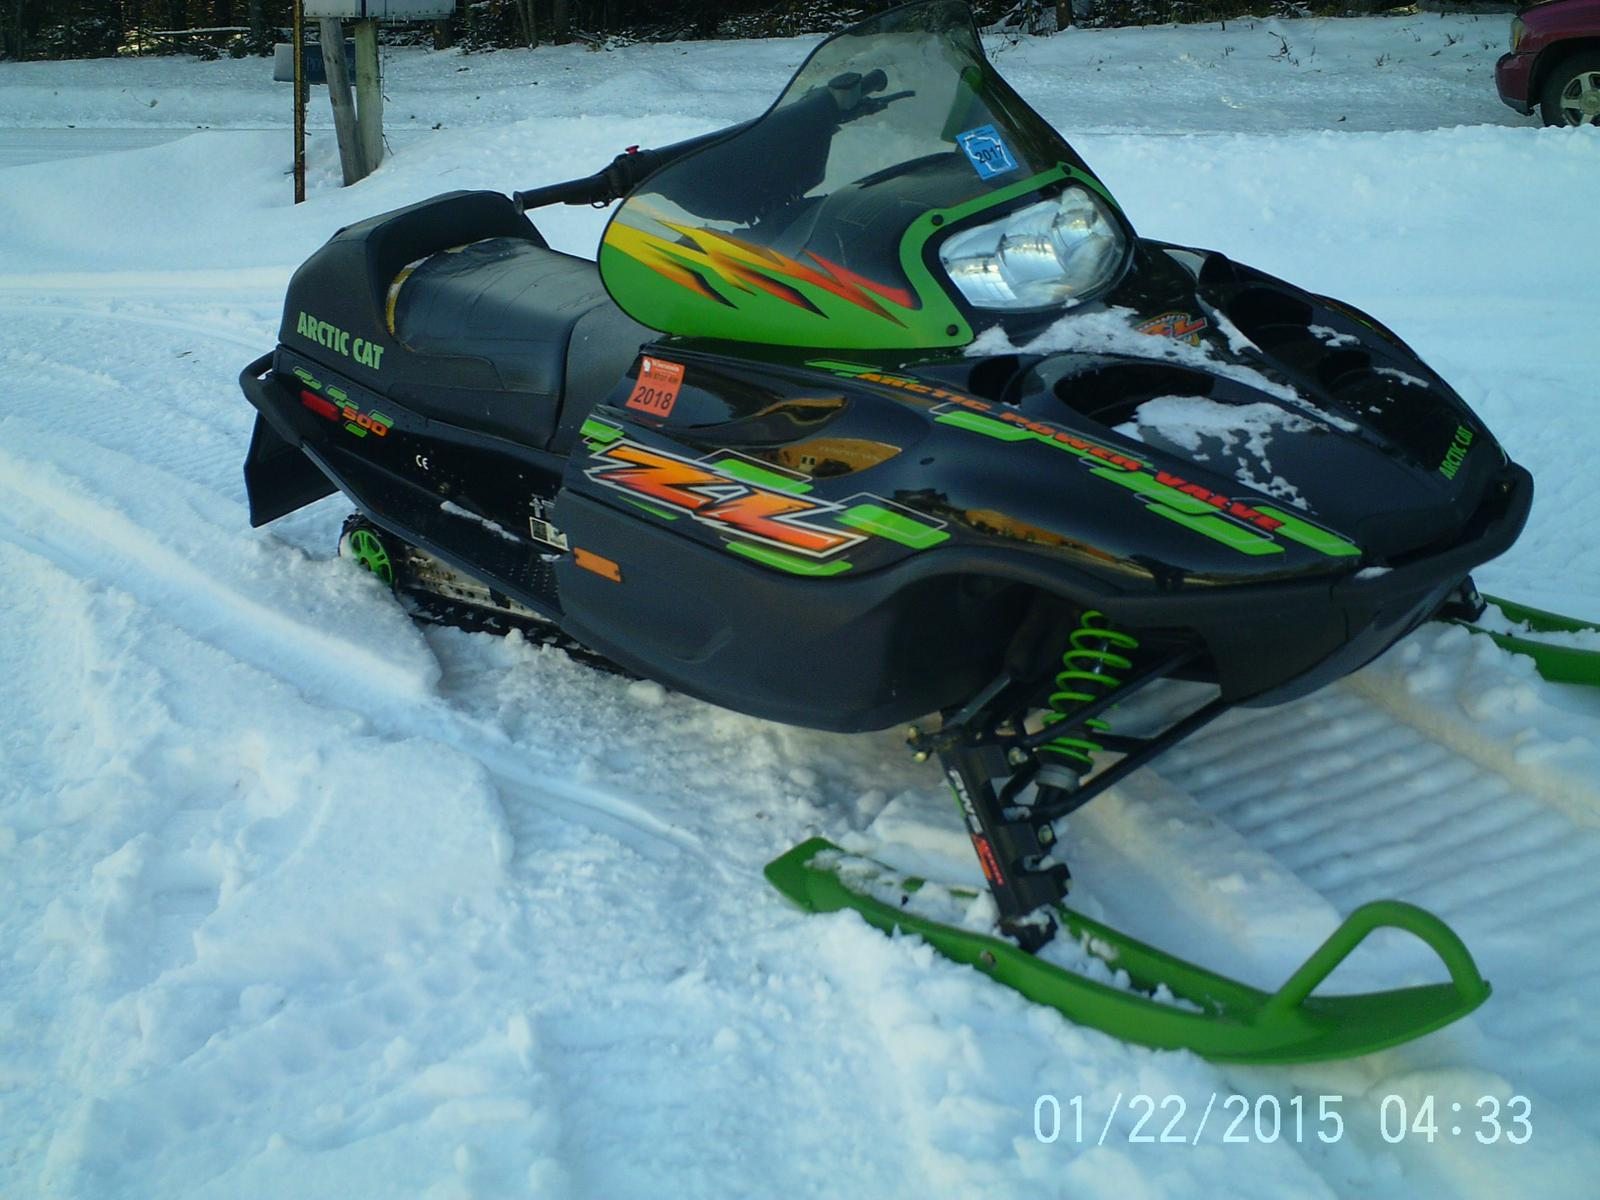 Inventory From Arctic Cat FOUR STAR SPORTS WEBB LAKE WI 715 259 3286